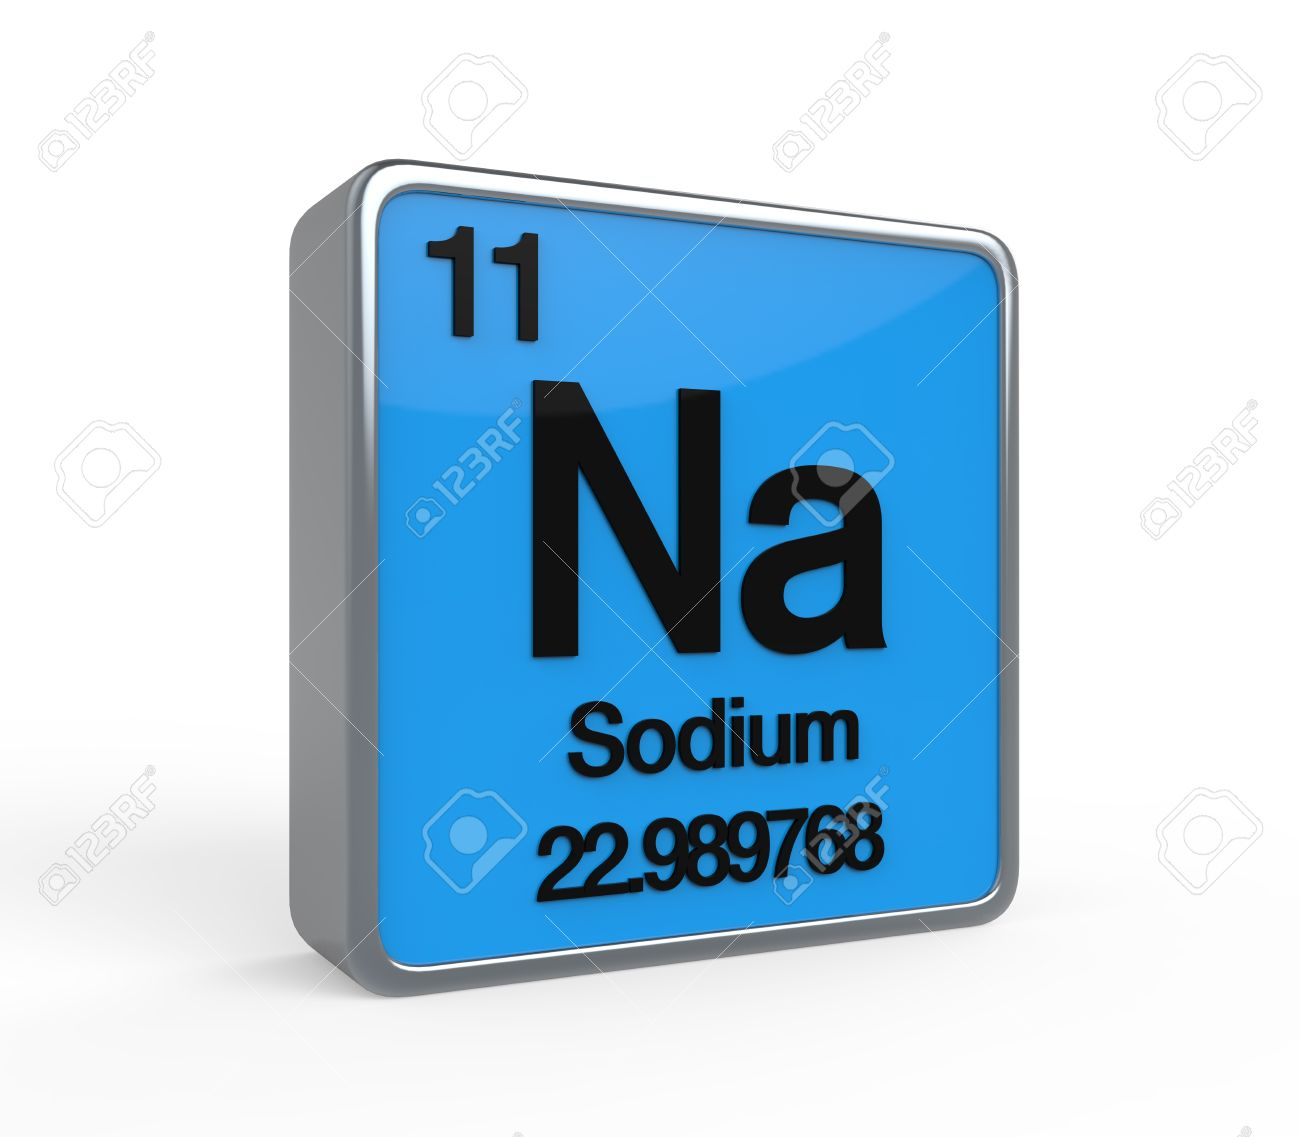 Sodium element periodic table stock photo picture and royalty free sodium element periodic table stock photo 20533996 urtaz Image collections